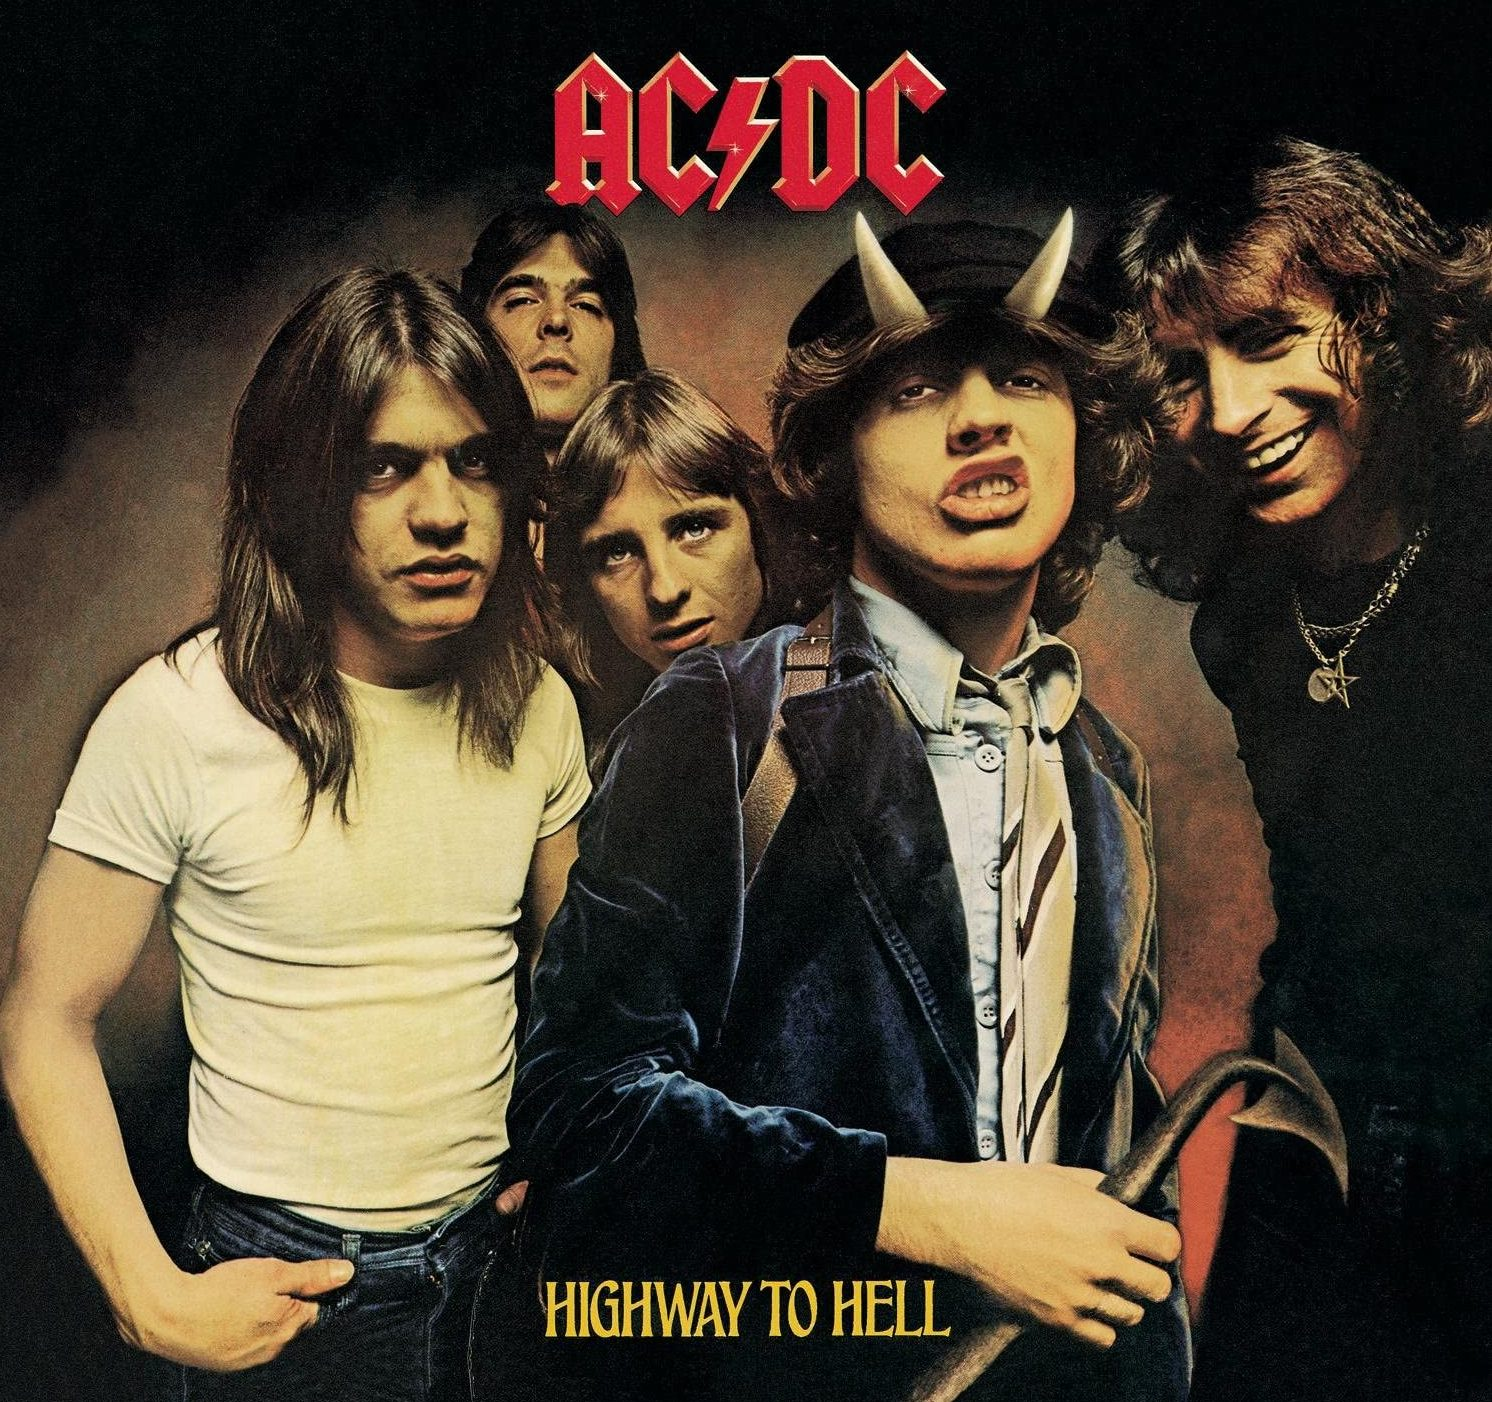 91NuHgWC6cL. AC SL1500 e1616595750238 20 Things You Never Knew About AC/DC